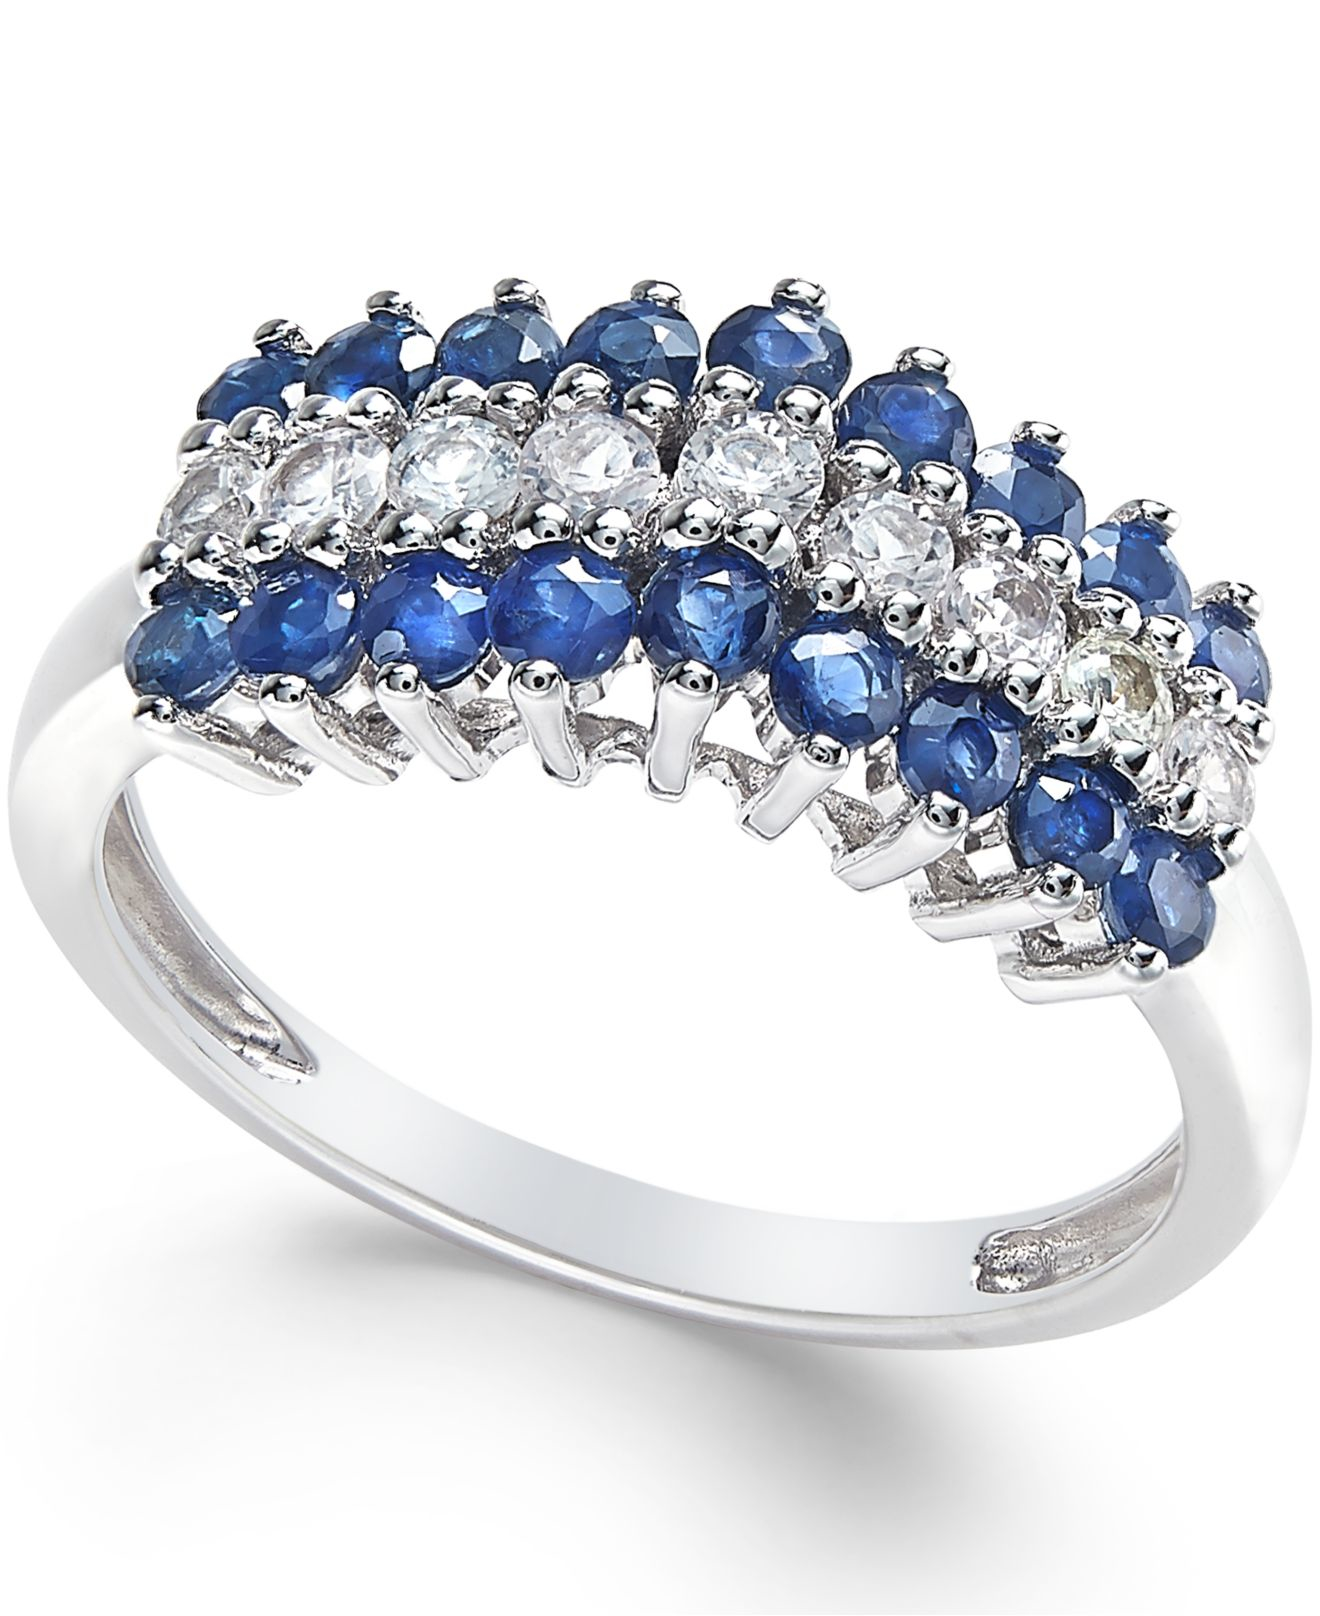 macy s blue sapphire 9 10 ct t w and white sapphire 1